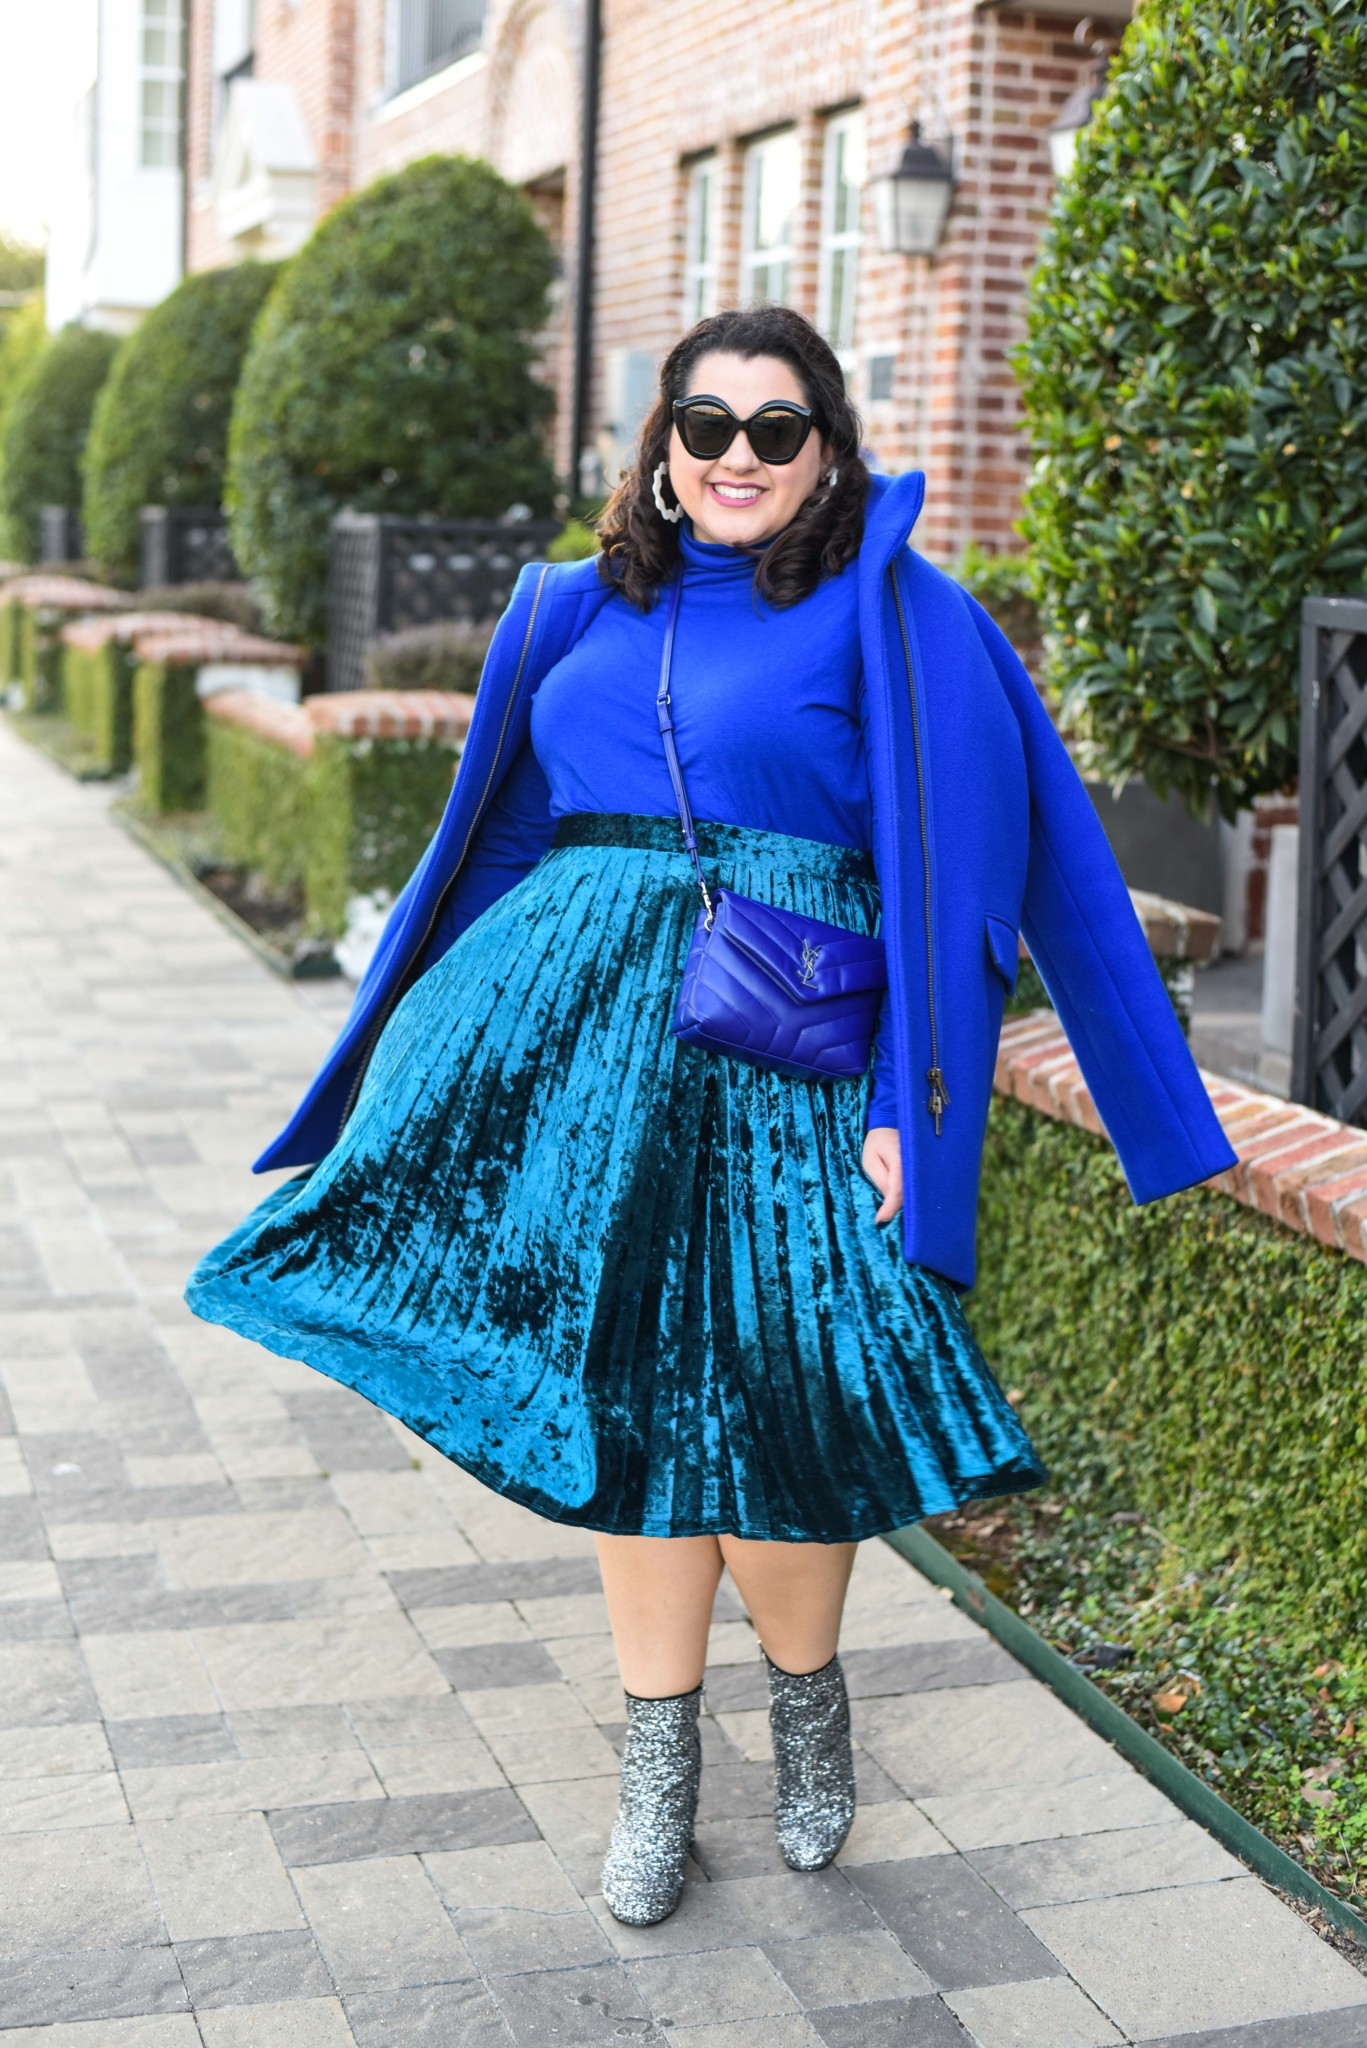 Plus size blue monochromatic outfit styled by Emily from the style and travel blog, Something Gold, Something Blue.